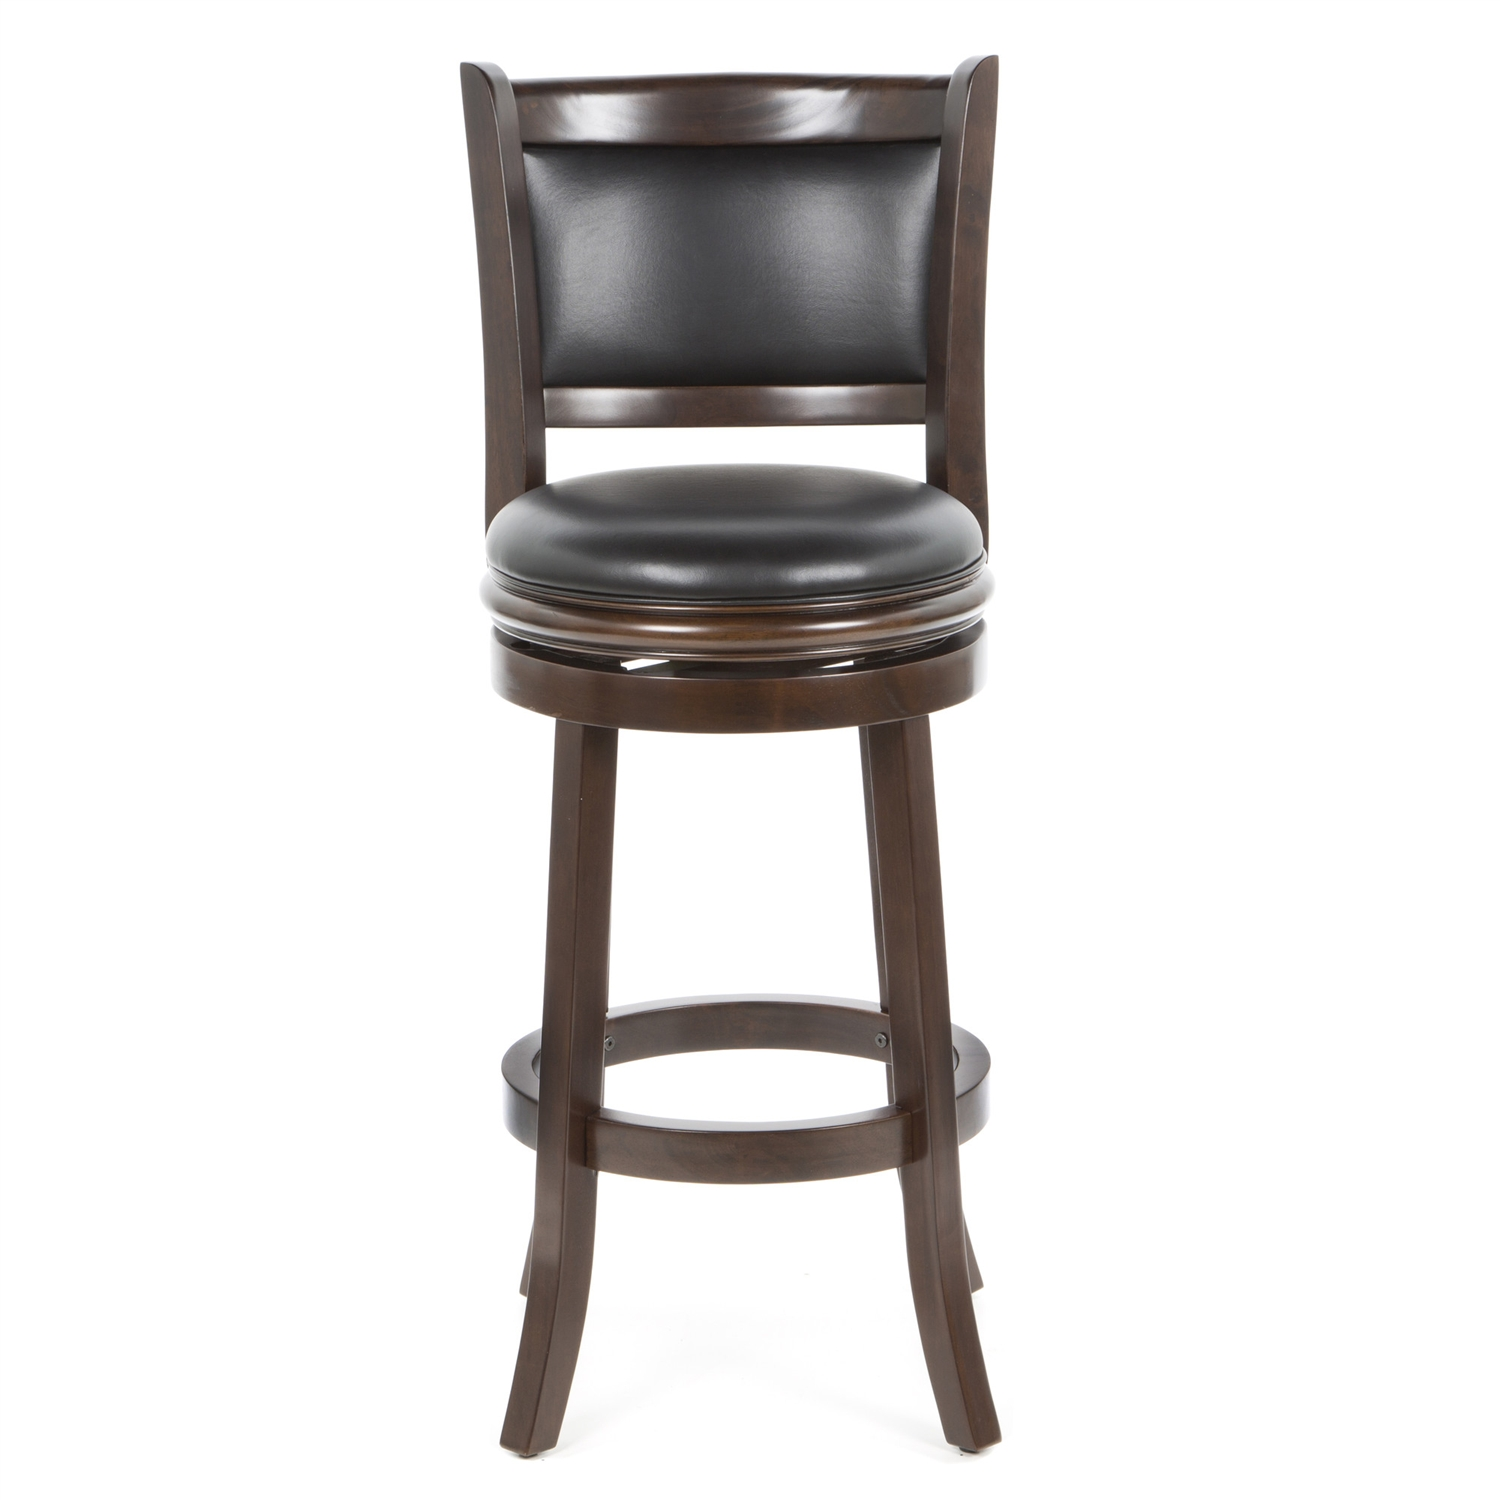 Accent your bar space with this classy and stylish Cappuccino 29-inch Swivel Barstool with Faux Leather Cushion Seat. Its attractive and durable design is a perfect fit for all decor settings. It occupies less space and proves highly useful when you have guests at home.This stool has a solid hardwood construction that ensures it lasts for many years to come. The lustrous finish lends it a timeless look and adds to the appeal. It is fitted with a rich faux leather seat with high density foam to offer comfortable seating and enhance its appearance. It has flawlessly crafted French style legs with tempered bottoms. The steel ball bearings keeps it steady. The swivel ensures unrestricted movement. While the full ring footrest lends more strength and stability. The back support makes the seating experience more relaxed.The bar stool has a weight capacity of 250lbs. Its seat height is 29''. The overall dimensions of the bar stool are 43.5'' in height, 17'' in width and 18'' in depth. It is available in different shades to best suit your decor. This stool is best paired with an elegant bar table to complete the sophisticated look of your decor.